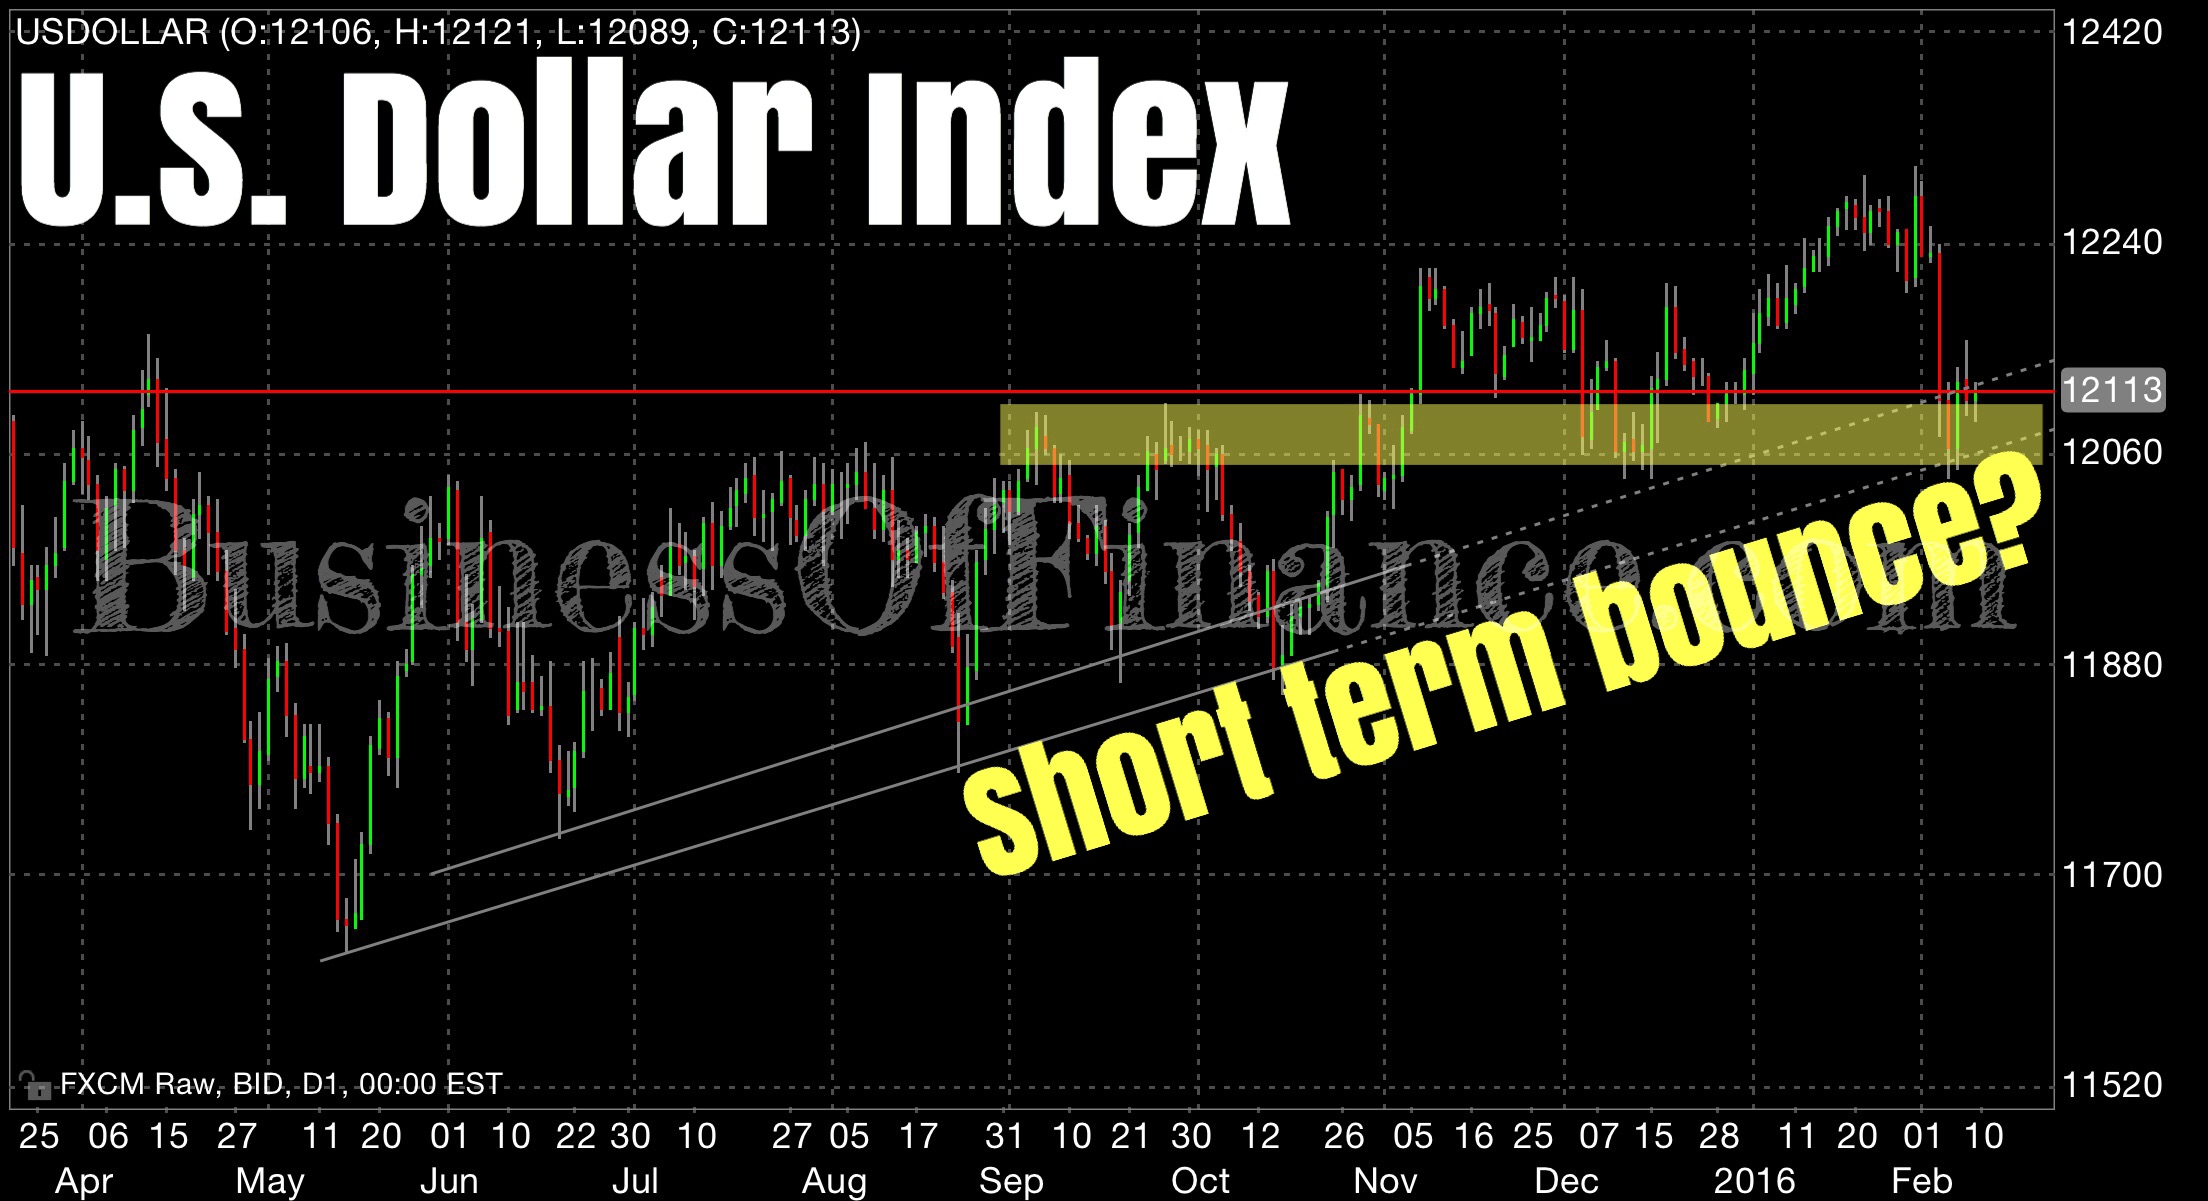 As we wrote in  last week's snippet , the U.S. dollar index (TWI DXY) remains at an important technical juncture as it now challenges a key long term trend line buffer that has supported a volatile bull trend for almost an entire year. Based on last week's reactive price action, we believe that more downside is likely for the medium to long term. For this to happen, the index has to clear specific technical support areas. In the broader sense, this technical take ties in with our overall view on the greenback.